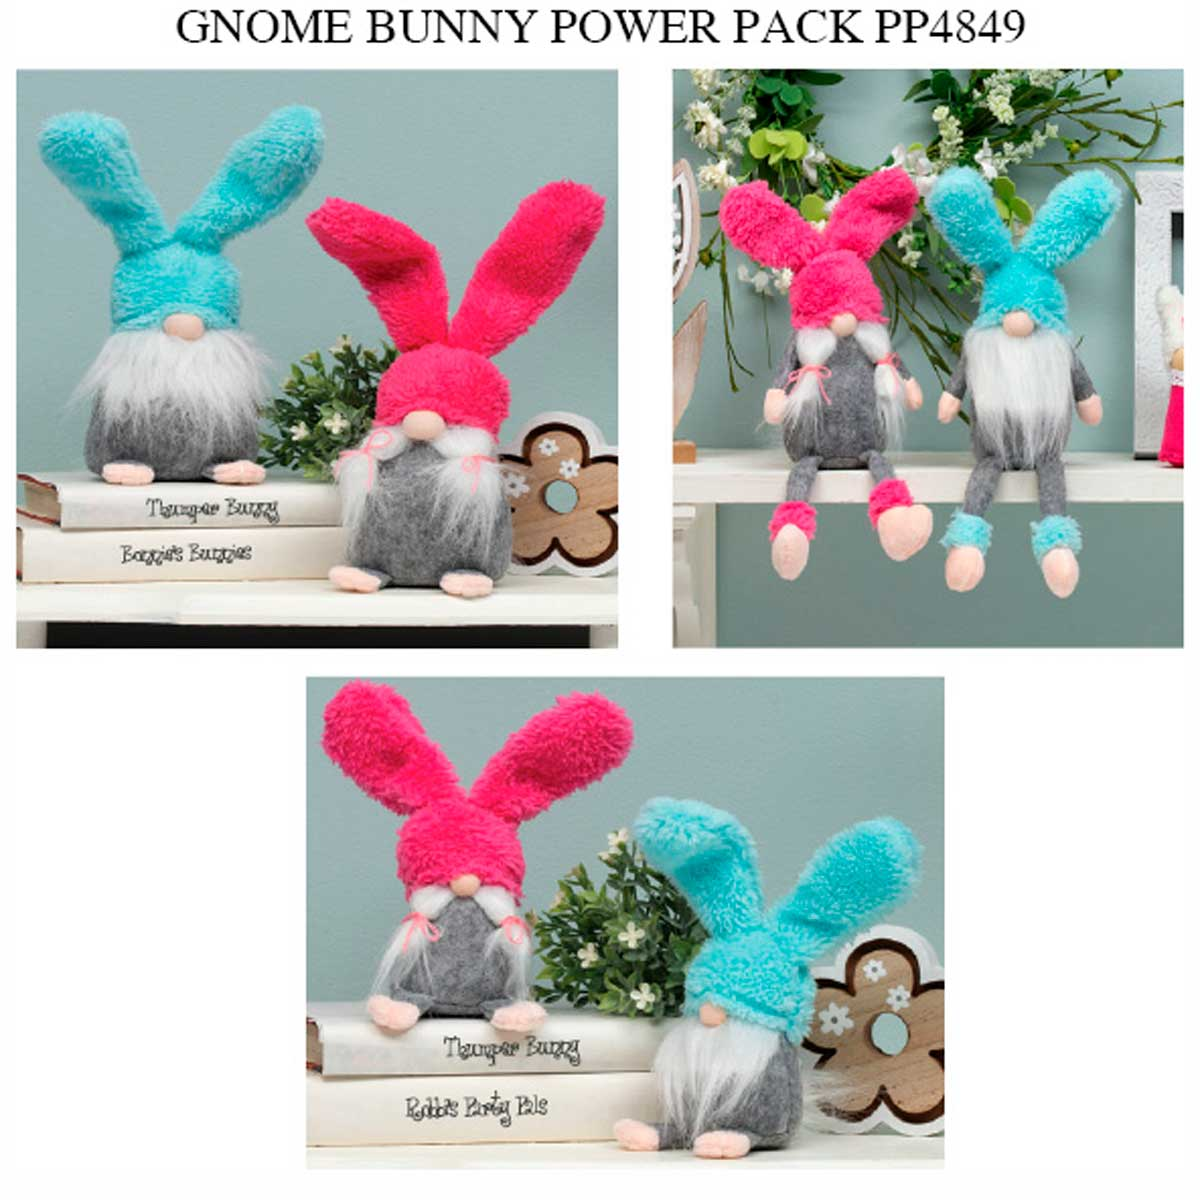 Thumper Gnome Power Pack 16 units PP4849